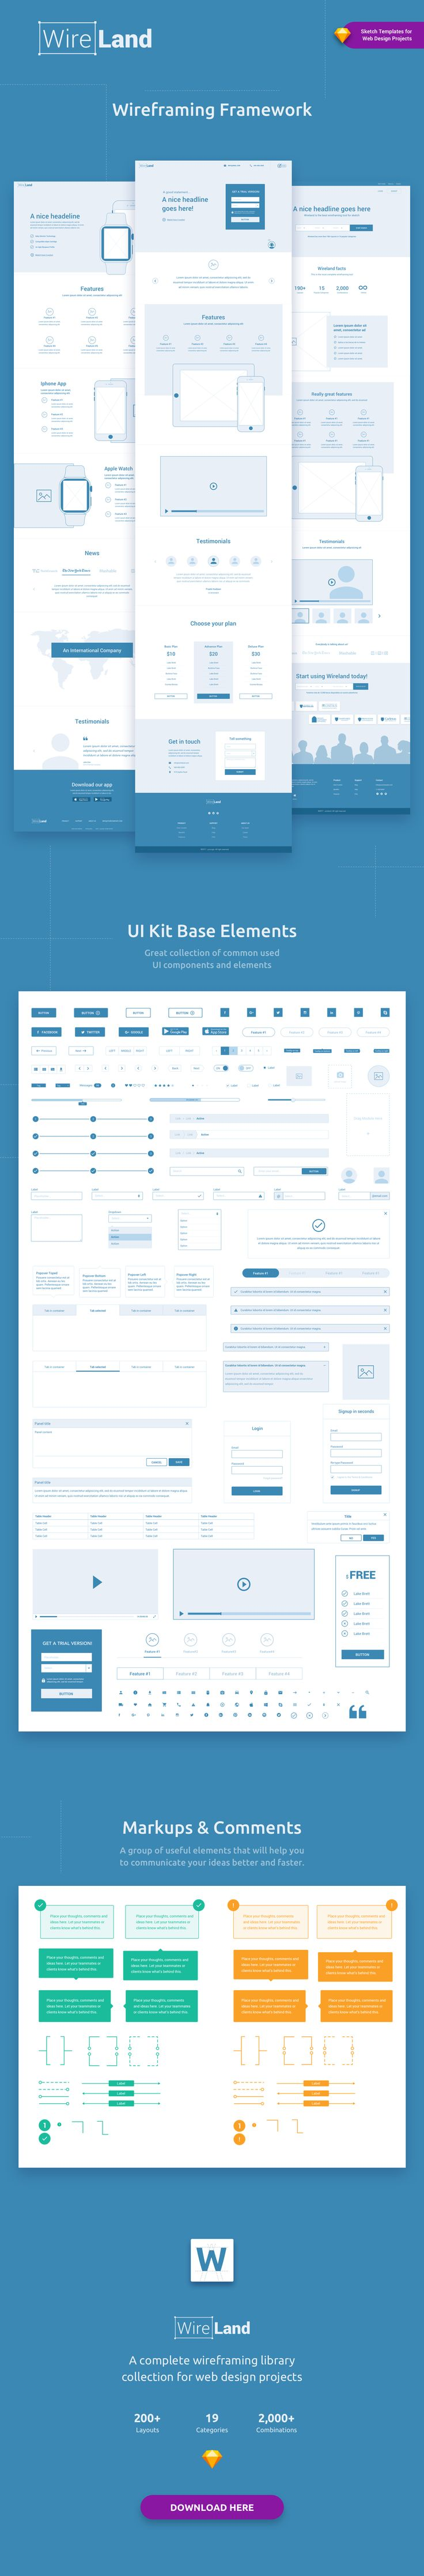 62 best Wireframe Website images on Pinterest | Web design projects ...